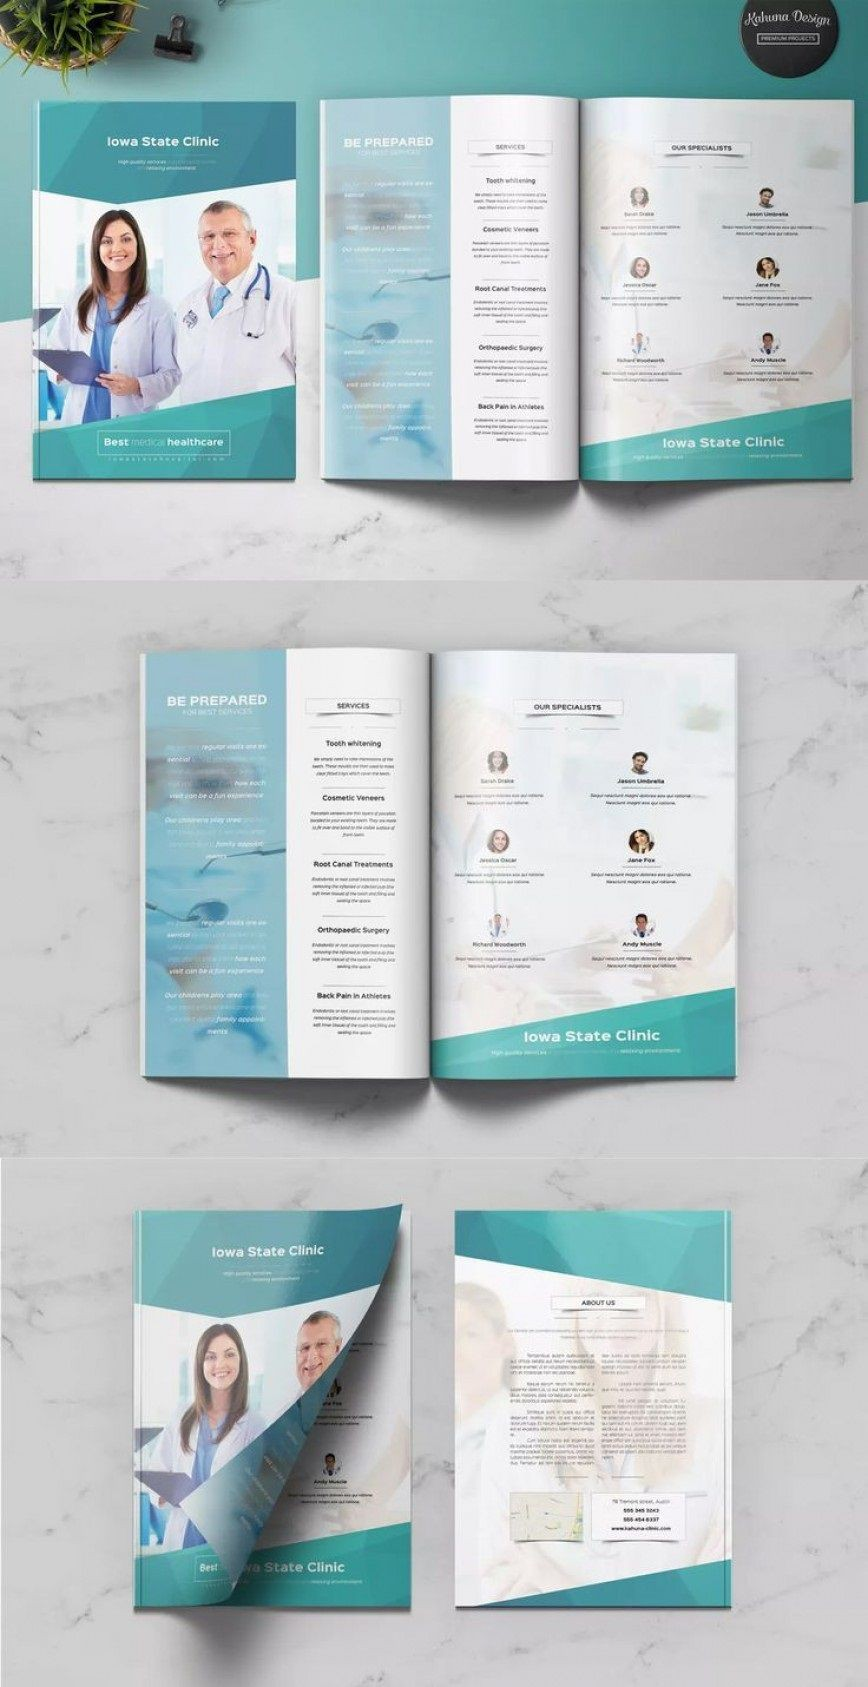 007 Remarkable Download Brochure Template For Microsoft Word 2007 High Def  Free868